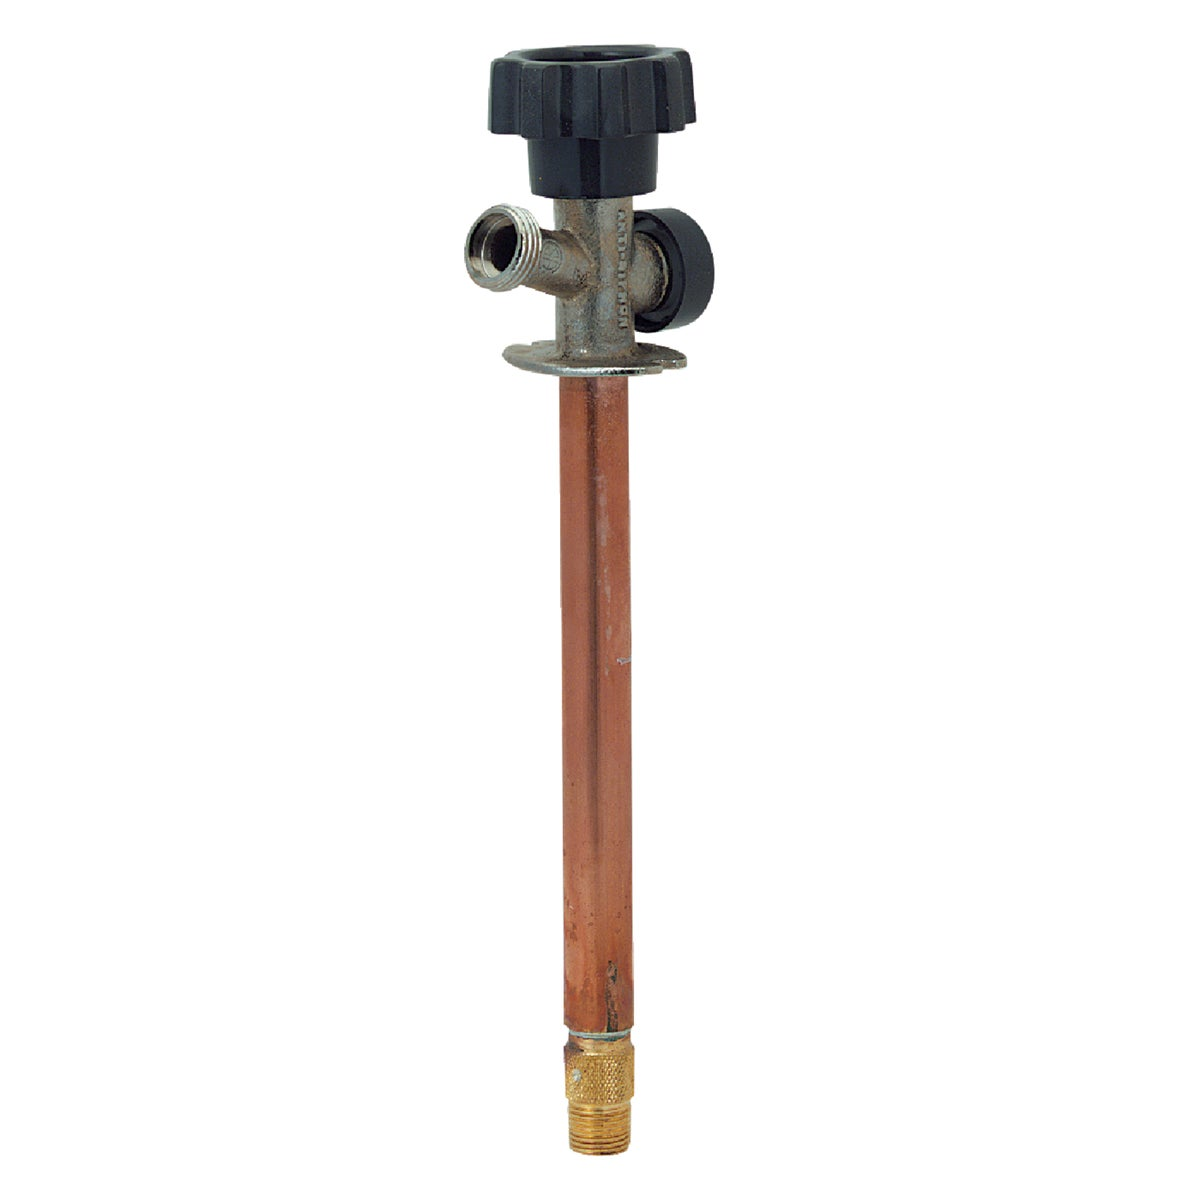 "8"" WALL HYDRANT - 478-08 by Prier Products"